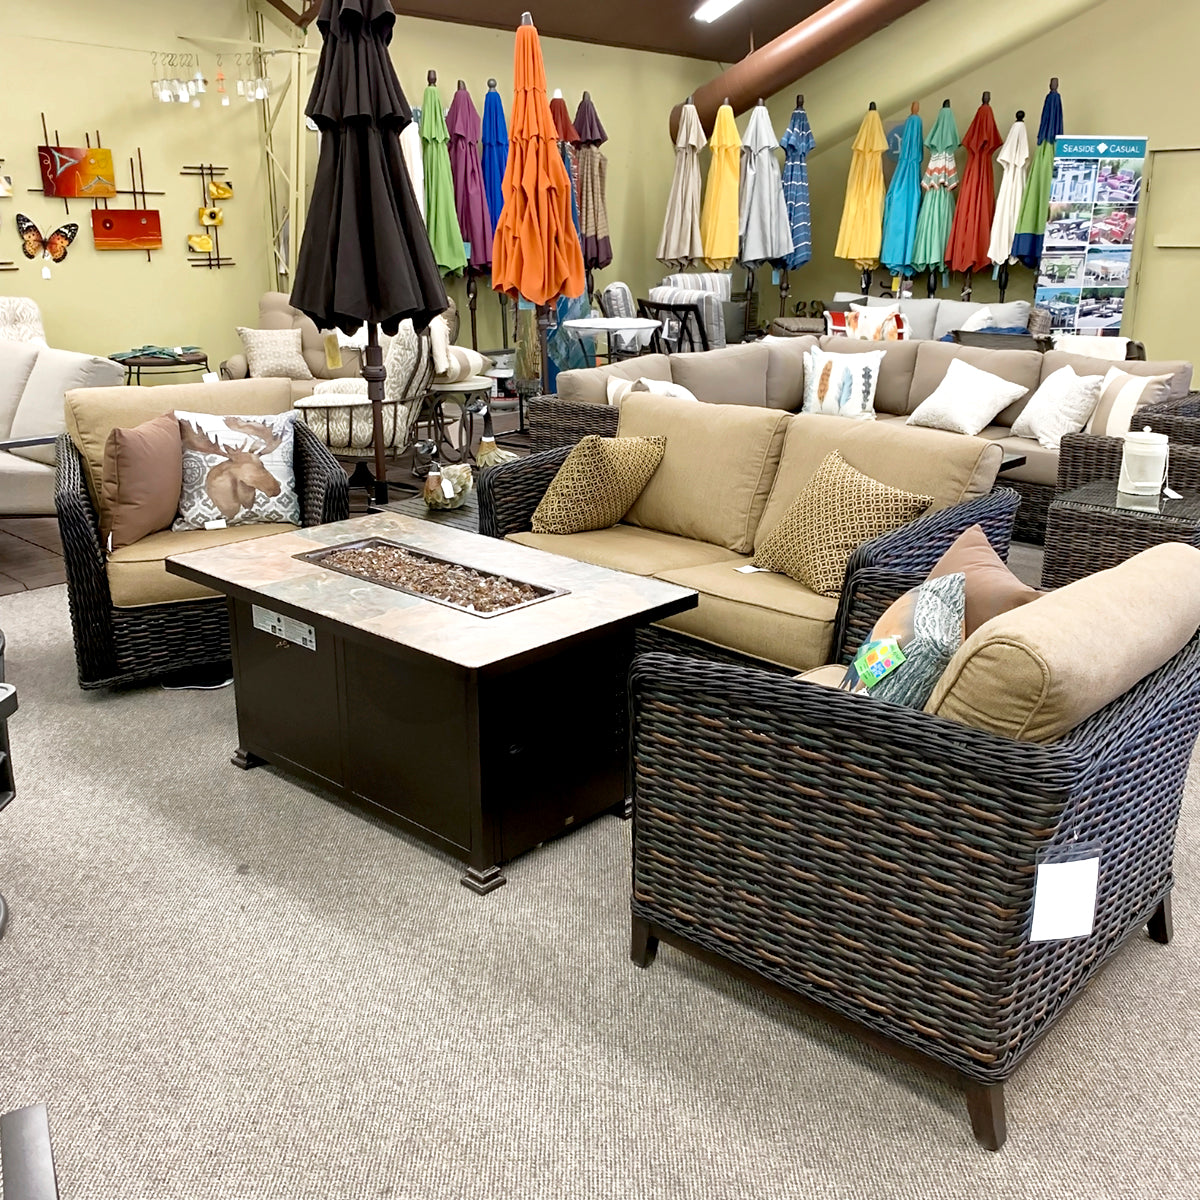 Patio Renaissance Catalina Lounge Chair is available at Jacobs Custom Living our Jacobs Custom Living Spokane Valley showroom.